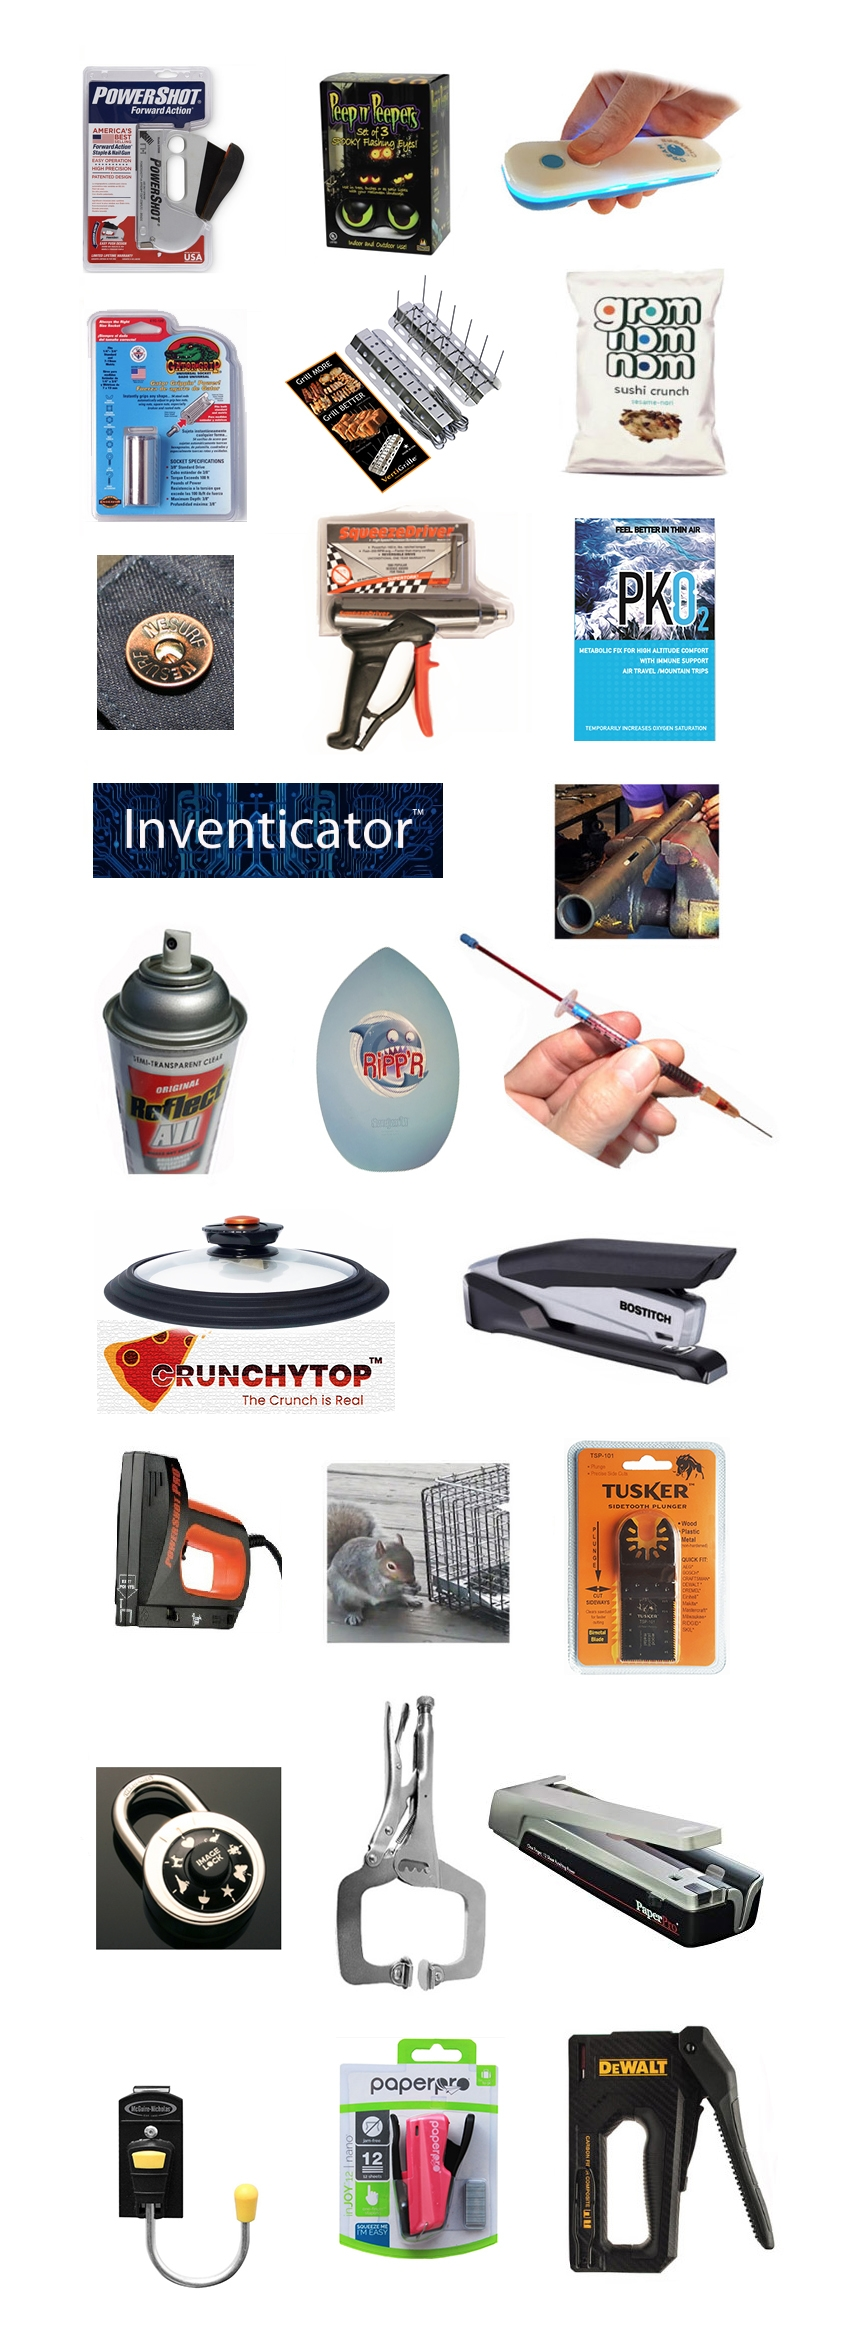 Invention City inventions